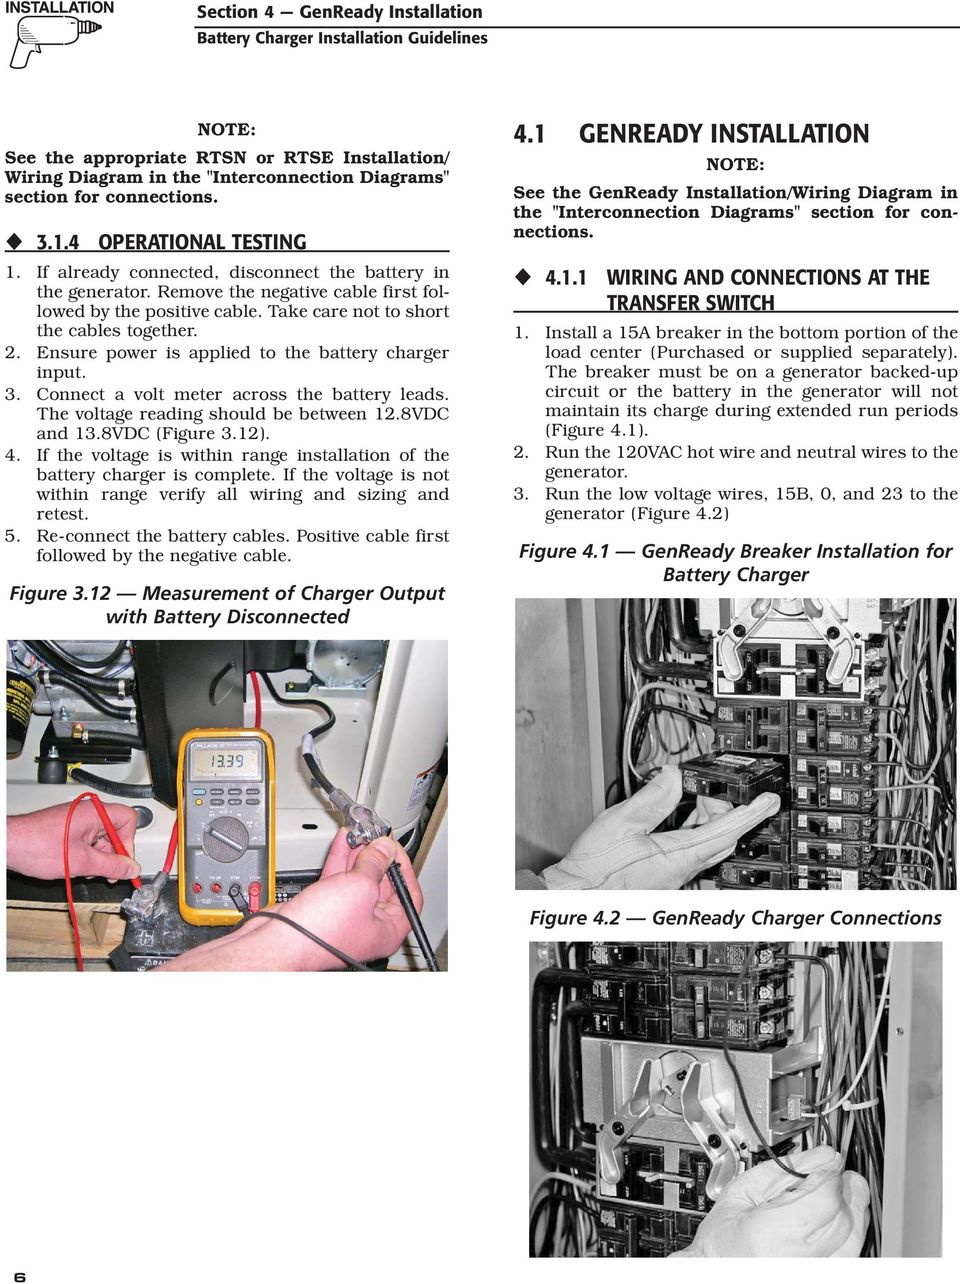 Air-cooled Generator Battery Charger Installation Guidelines - PDF on 12 volt 3 battery diagram, battery bank for solar panels, batteries in series diagram, battery bank transformer, battery bank connectors, battery to starter diagram, battery bank parts, battery bank voltage, battery for wind turbine, battery bank cover, battery bank charger, battery bank switch, 12 volt battery equalization diagram, battery bank box, battery cable connectors, battery bank assembly, battery charger schematic diagram, battery bank cabinet, 24 volt battery diagram, solar battery bank diagram,